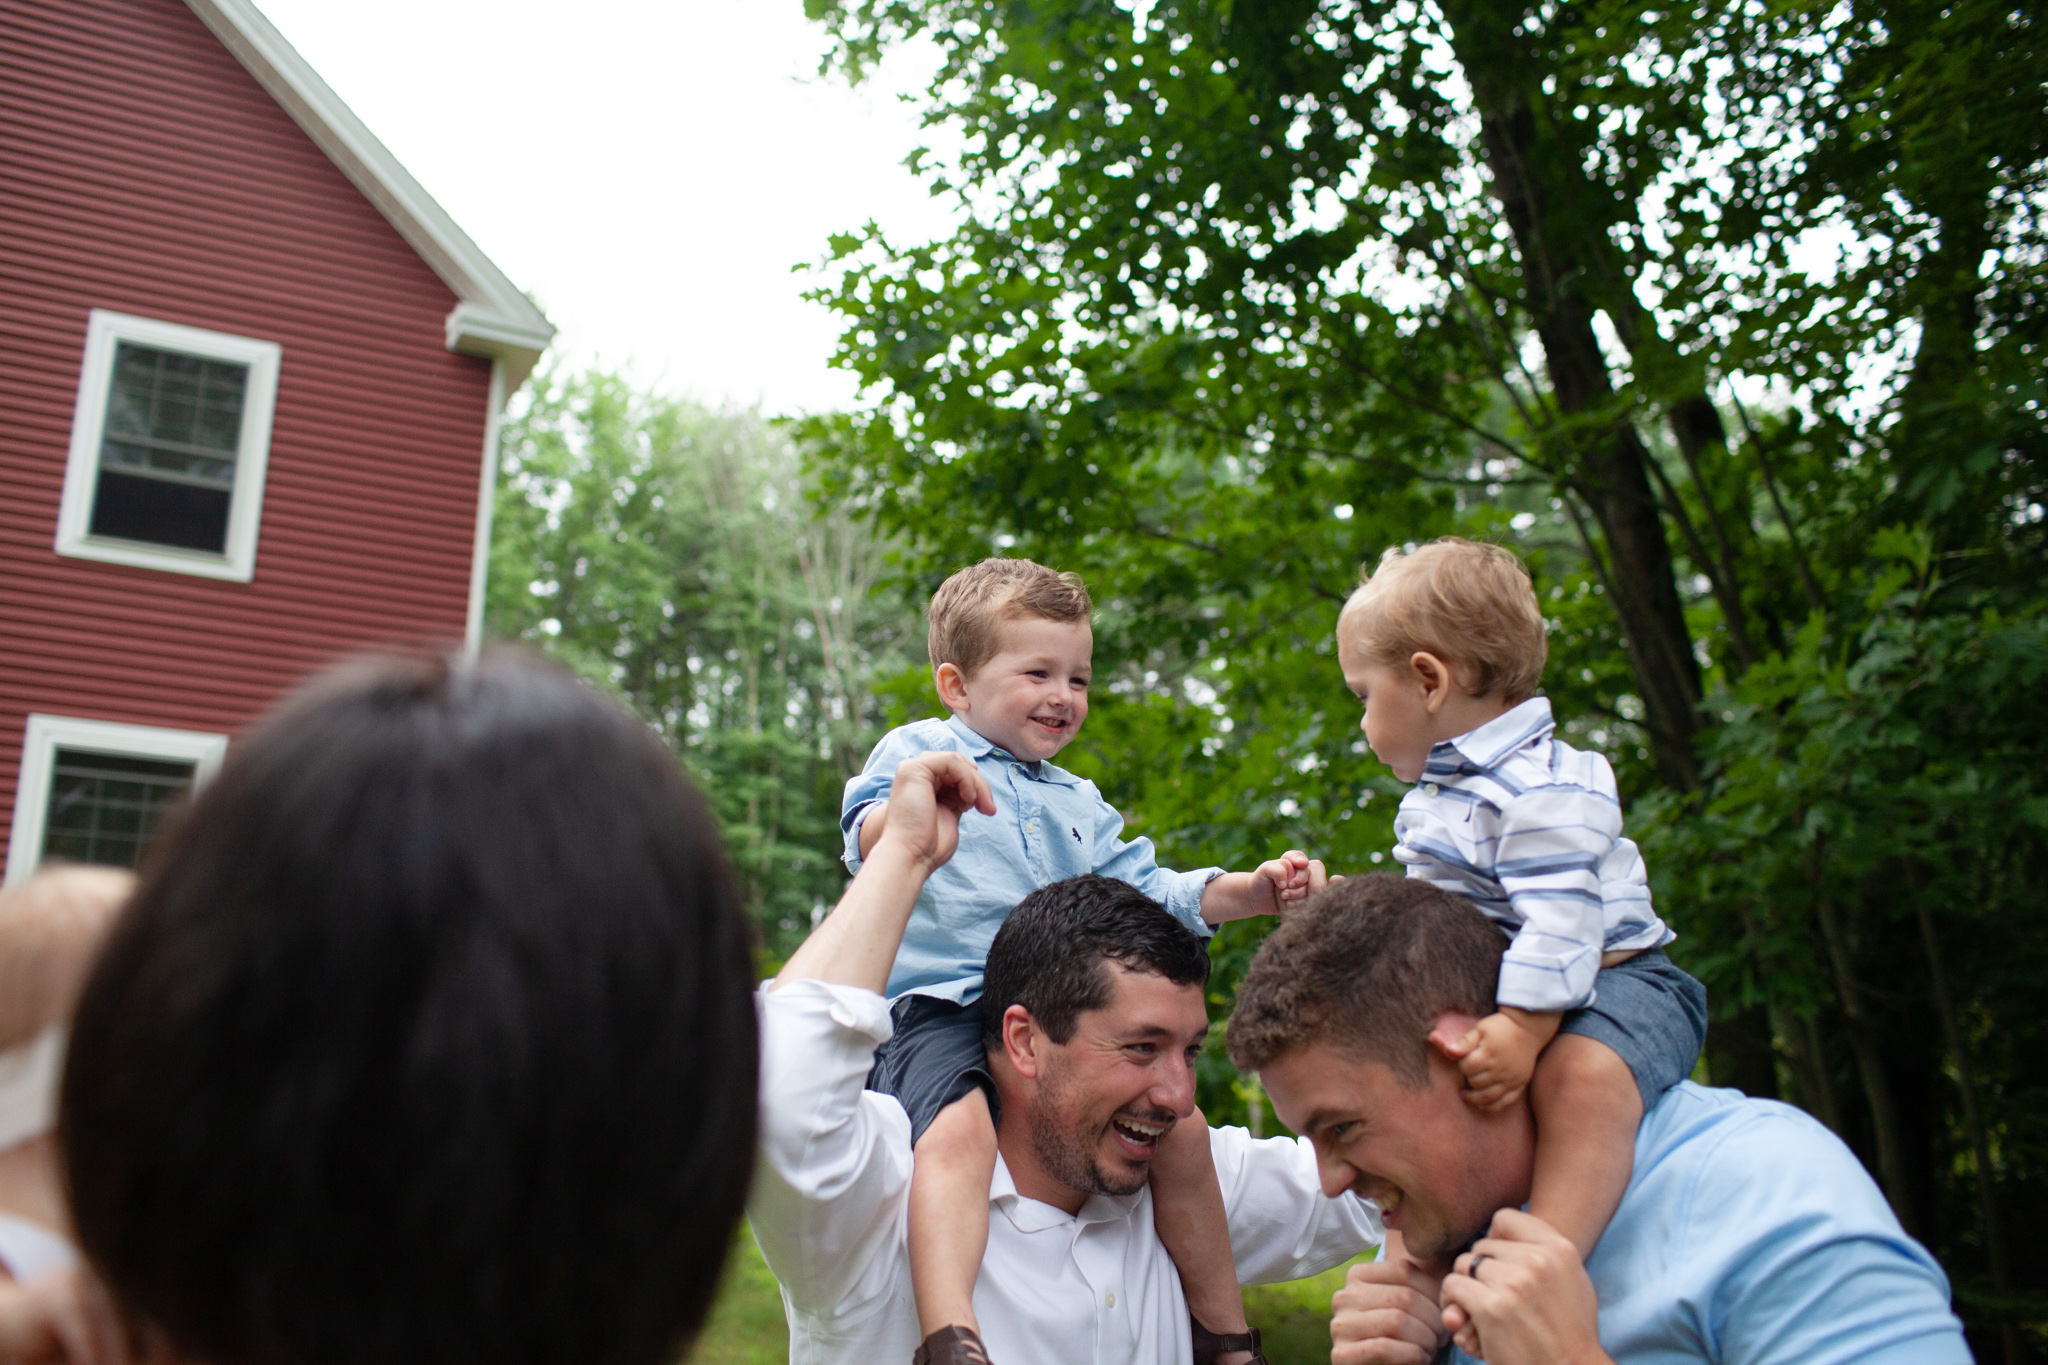 maine-family-photographer-stepheneycollinsphotography-19.jpg